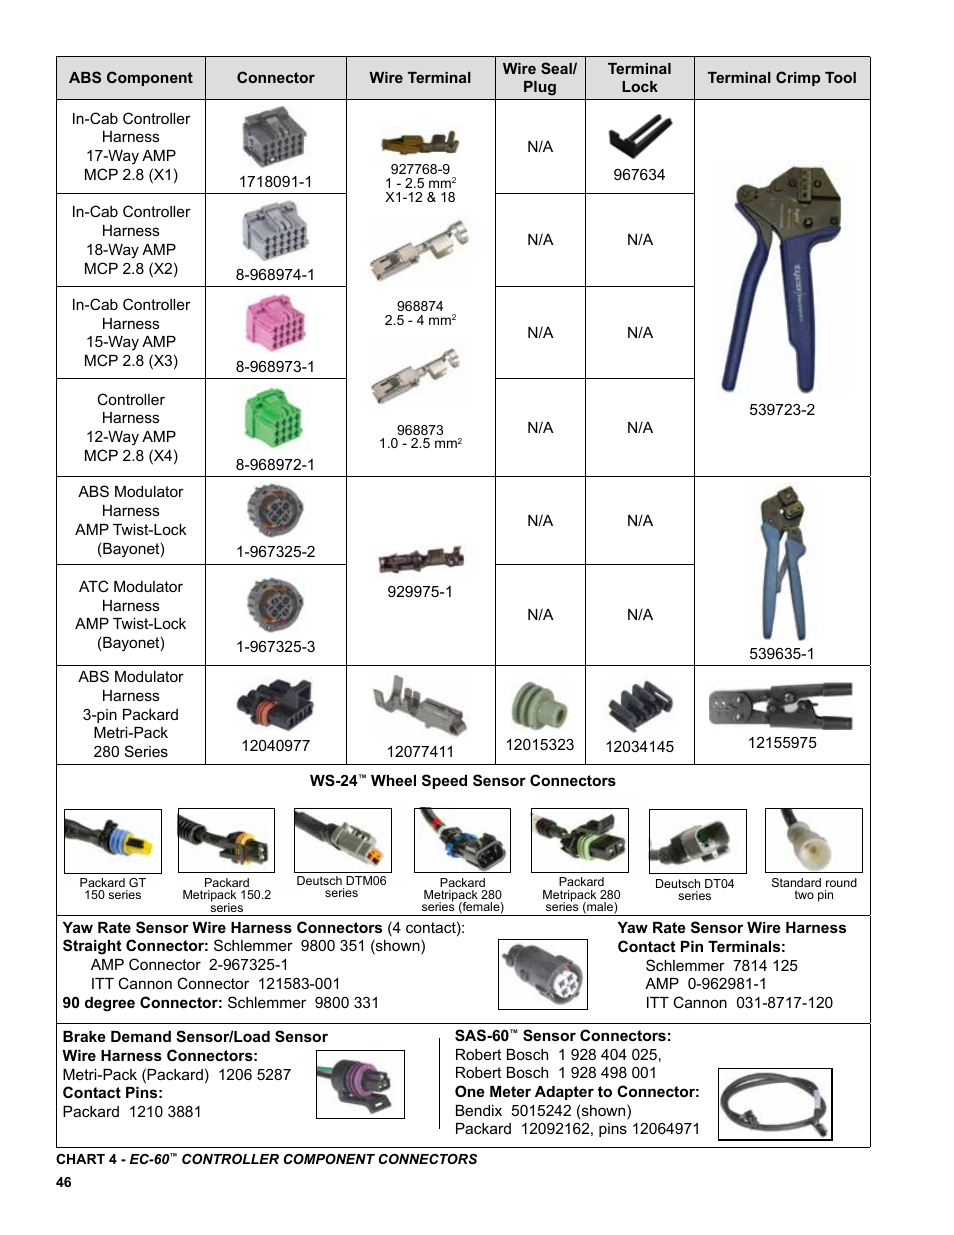 bendix-commercial-vehicle-systems-ec-60-esp-controllers-adv-page46  Amp To Wiring Diagram on trailer receptacle, 240 volt plug, rv service box, rv extension cord, rv power, rv inverter, round rv power plug, rv pedestal, welding receptacle, welder outlet, rv generator, locking receptacle rv, gfci breaker,